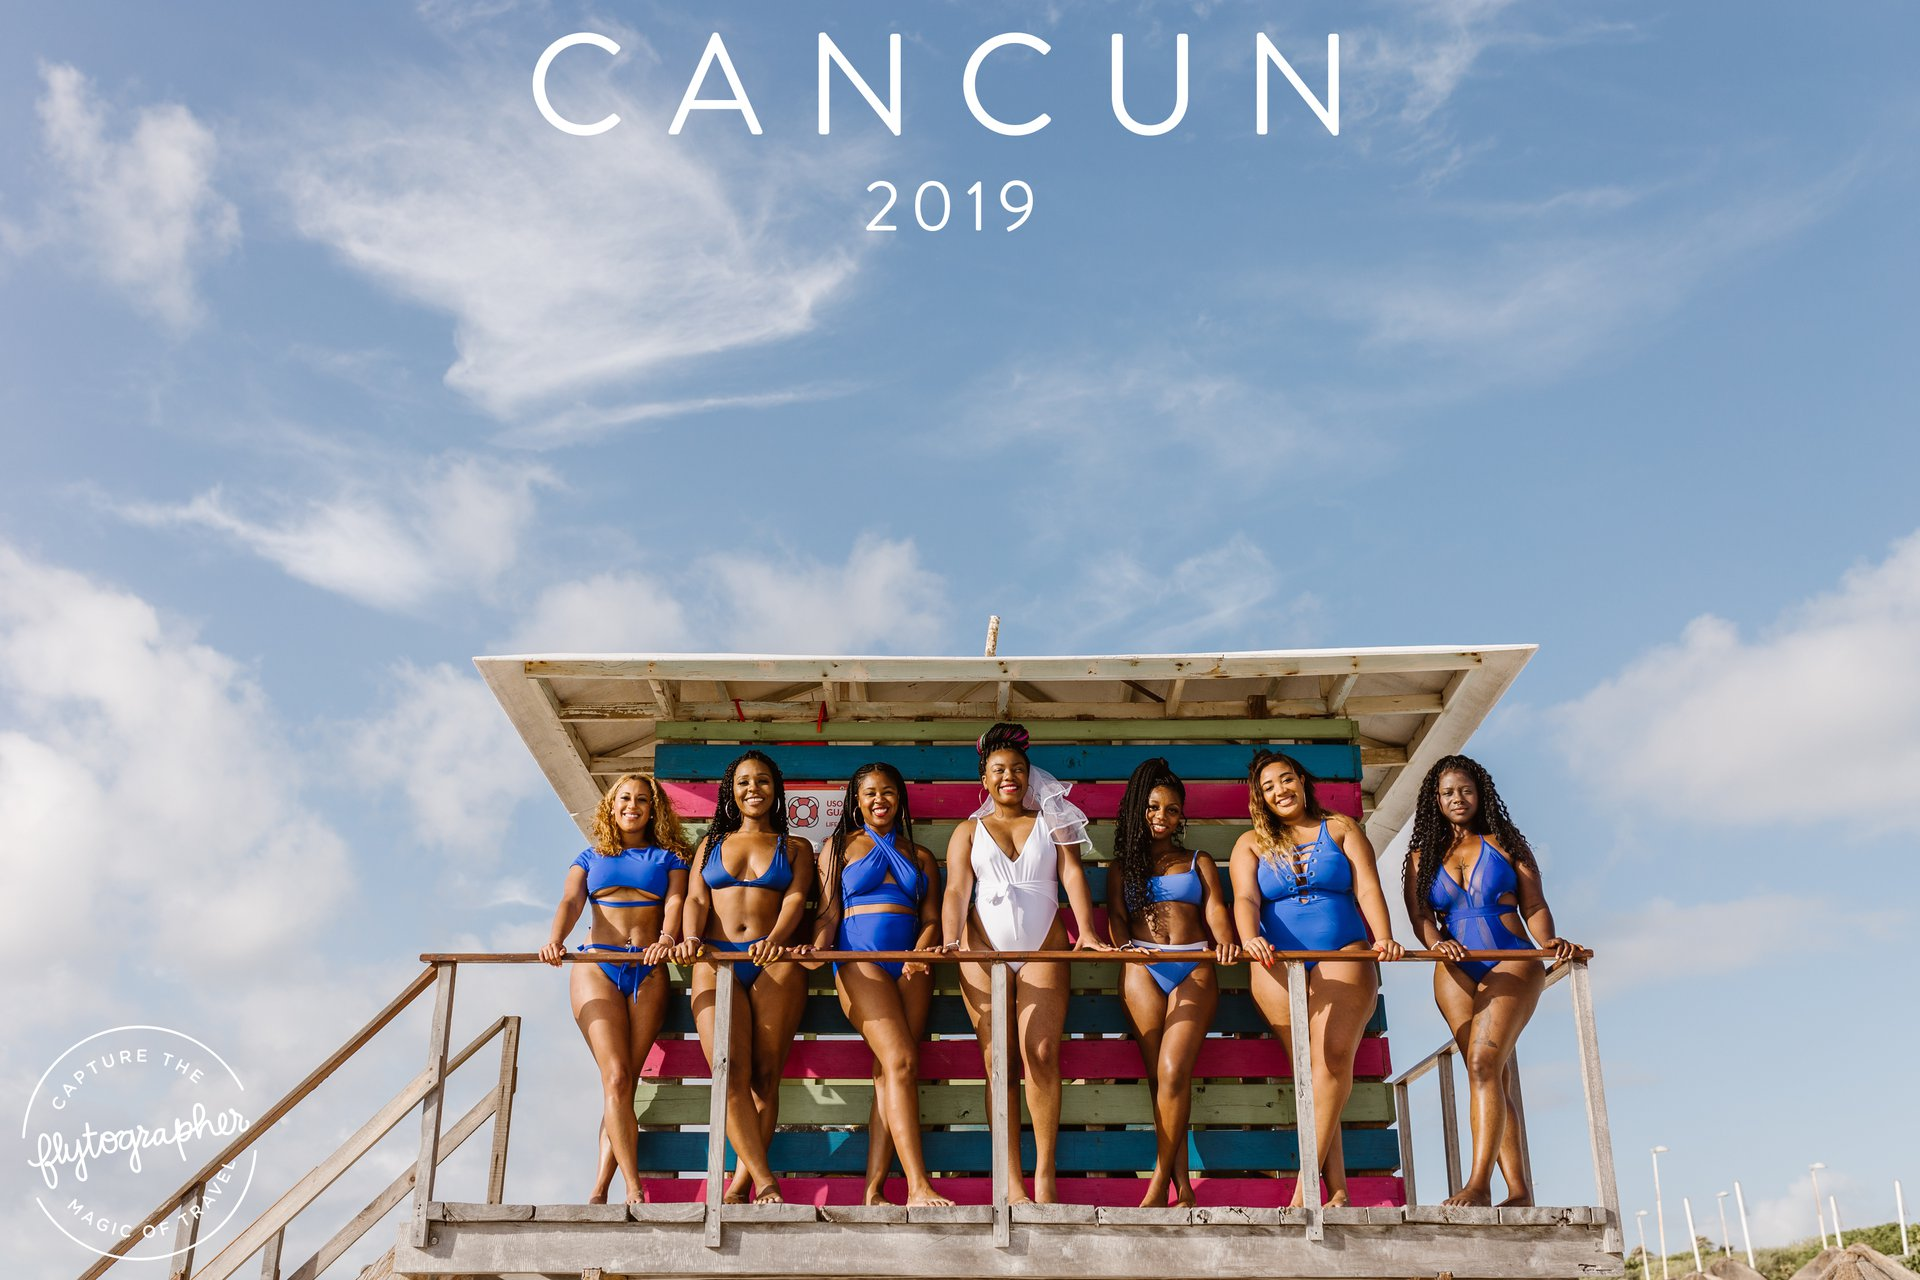 Cancun-Mexico-travel-story-Flytographer-43